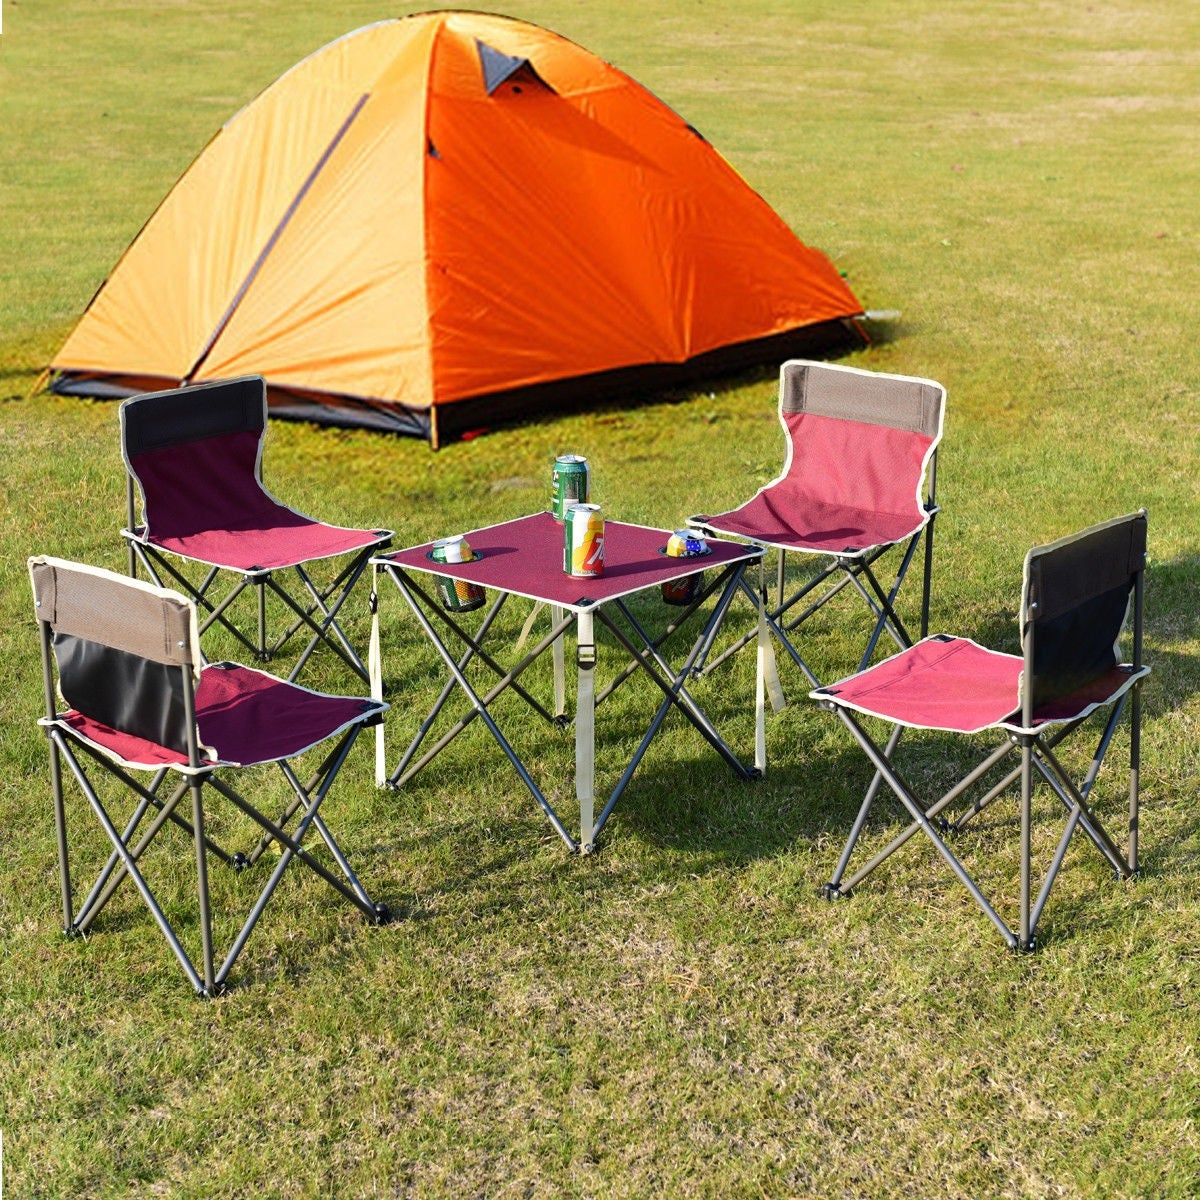 Costway Portable Folding Table Chairs Set Outdoor Camp Beach Picnic W Carrying Bag Red On Free Shipping Today 20461955